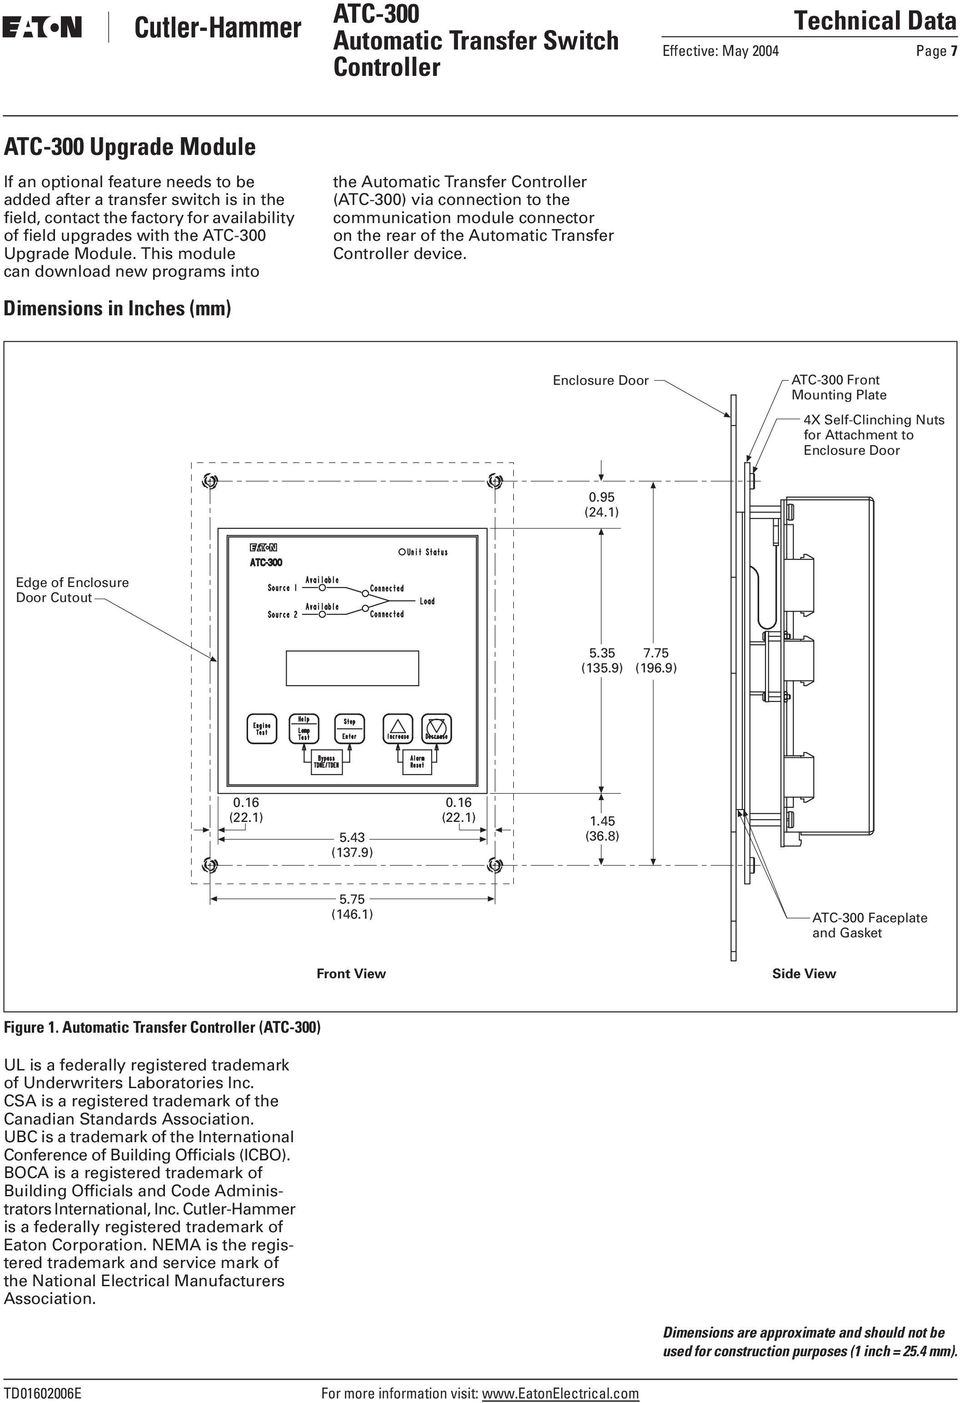 eaton atc wiring diagram atc 300 automatic transfer switch controller pdf free download  atc 300 automatic transfer switch